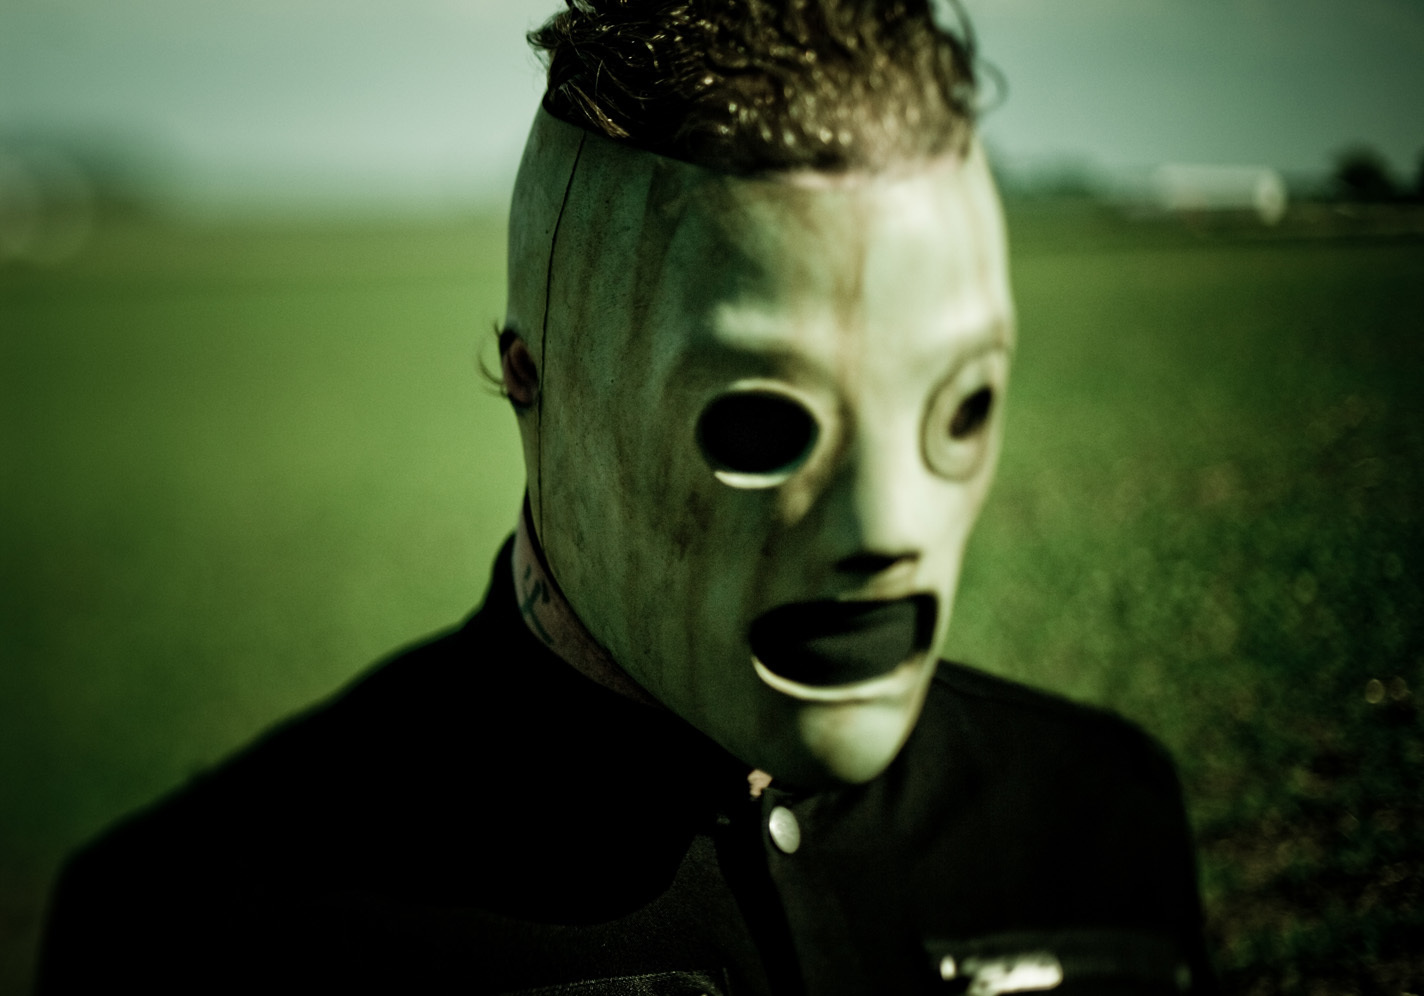 corey wallpapers   Corey Taylor Photo 21693739 1424x996